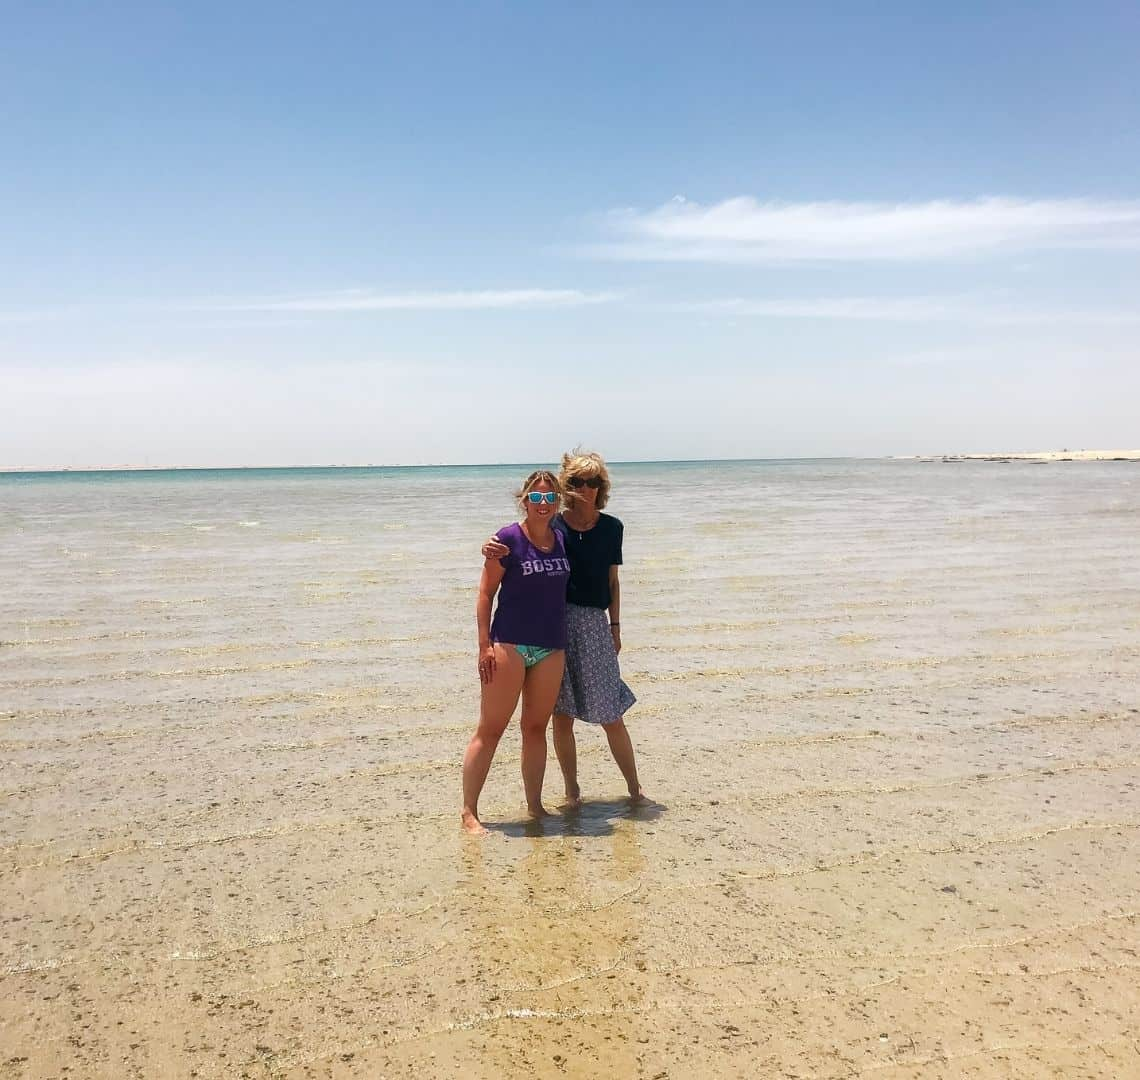 Me and Granny wanderlust are standing in crystal clear water. It is so clear, it is the colour of the sand at the bottom. In the distance is gets blue. The sky is blue with some wispy clouds. She has her arm around me.